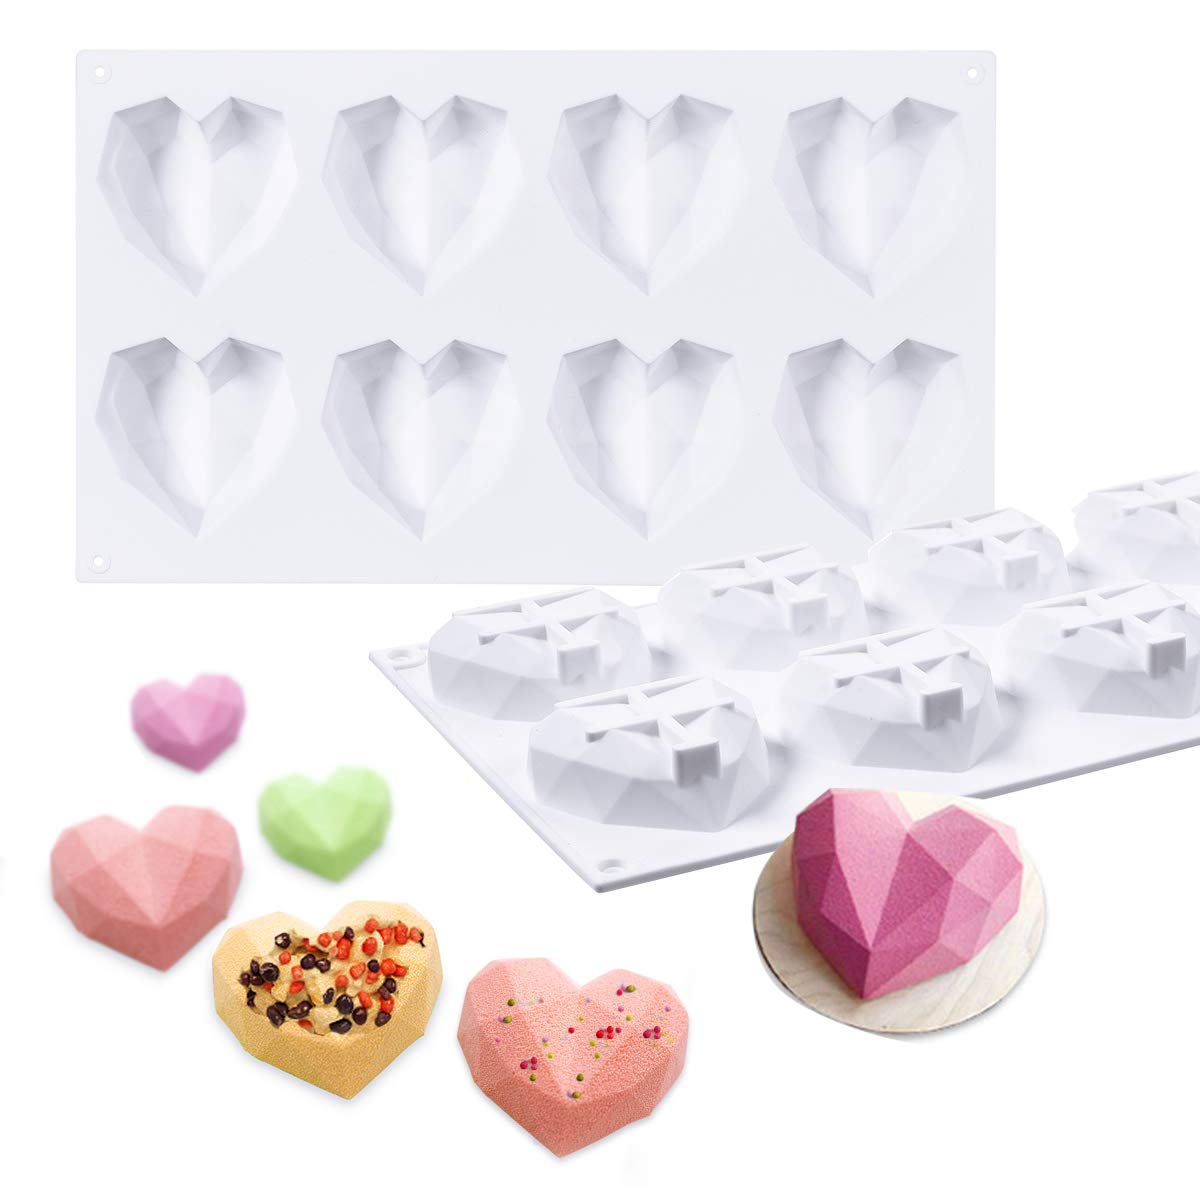 Janolia Heart Shaped Chocolate Molds, 8 Grids Silicone 3D Diamond Candy Mold Trays, for Cake Decorating, Baking, Candy Making, Chocolate, Cupcake, Toppers, Even for DIY Soap Candle